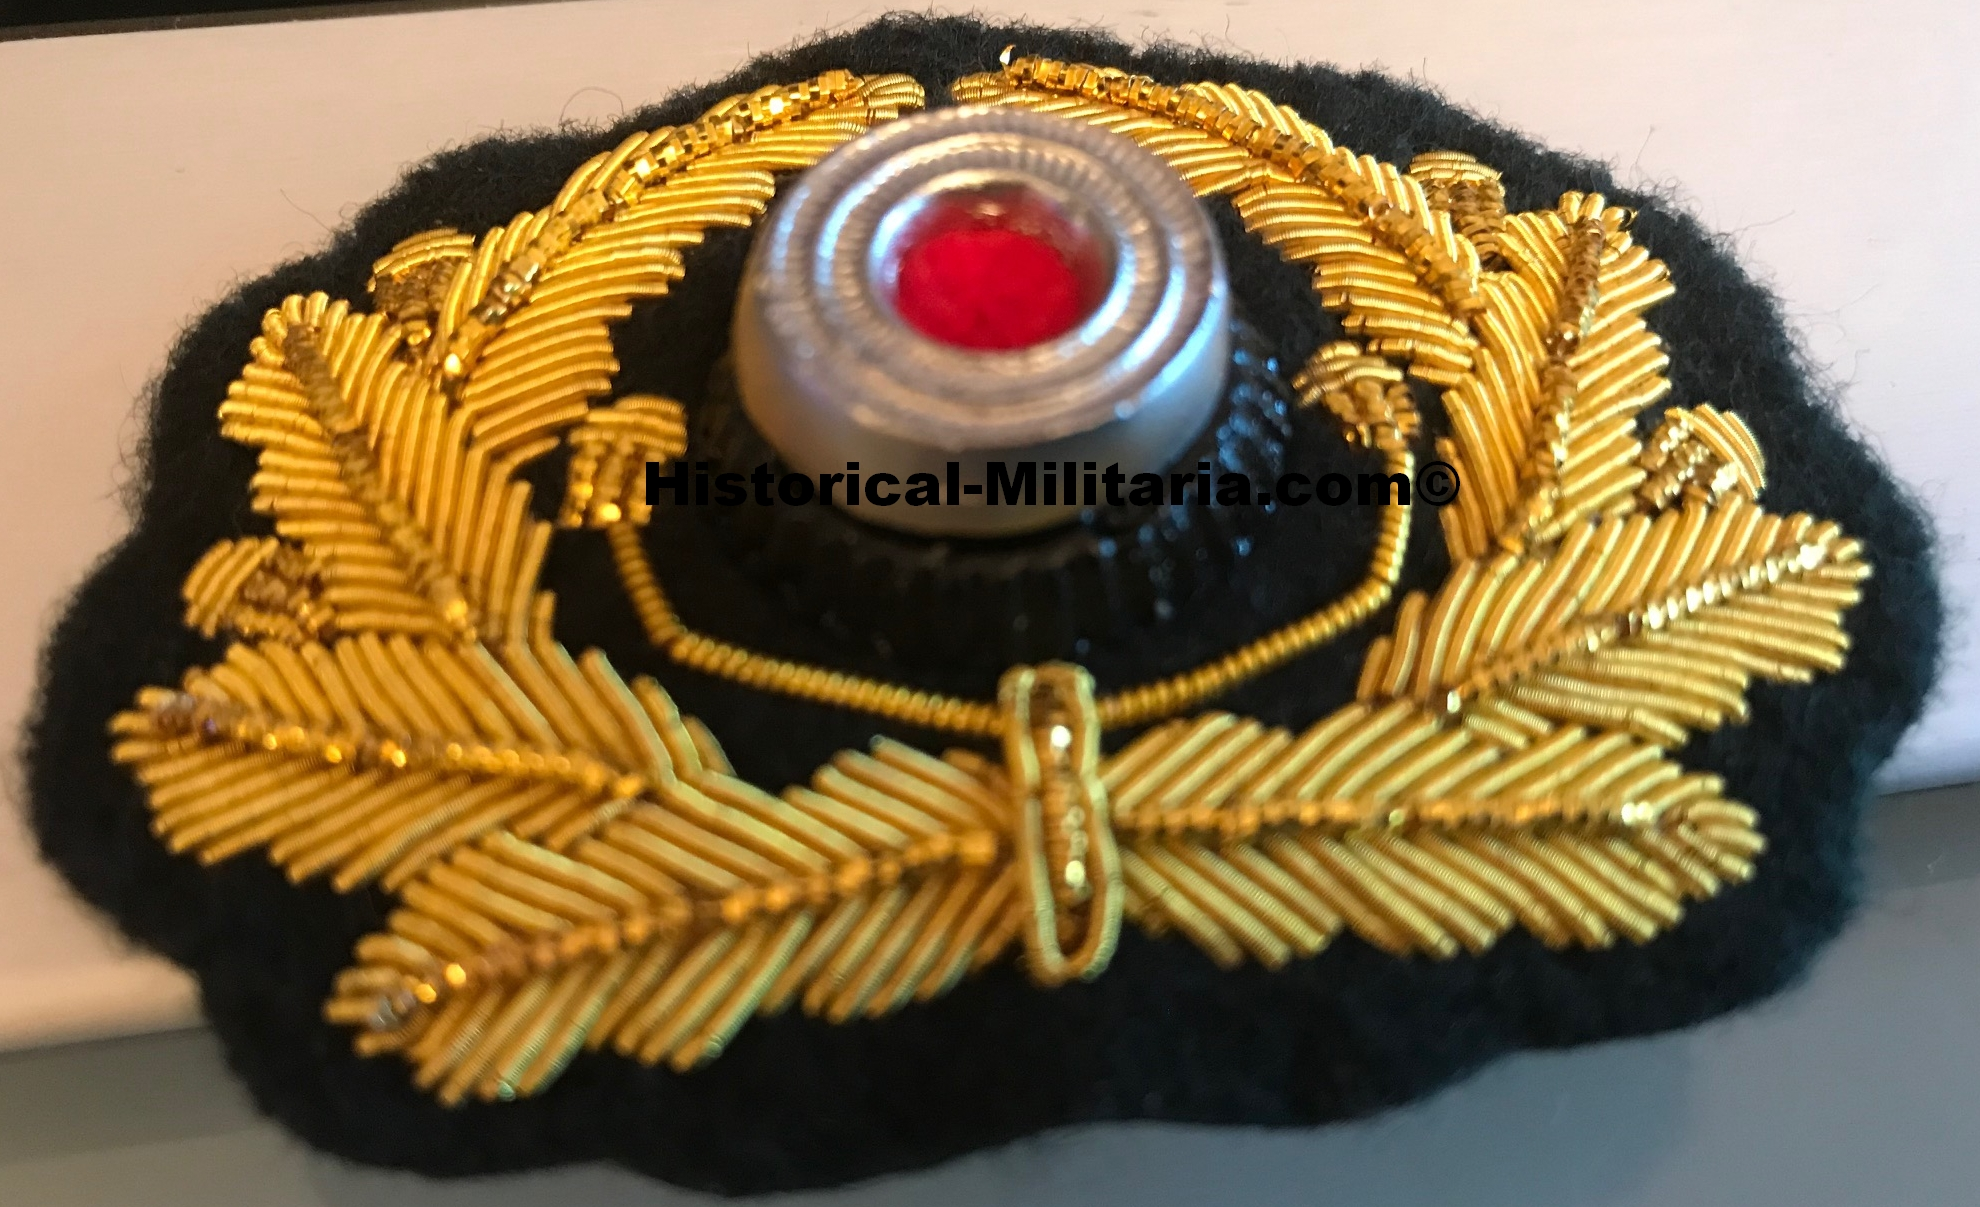 German Wehrmacht General Visor cap wreath set with matching eagle on dark green backing - Mützenkranz Set Wehrmacht General - Fregio e Aquila da Generale dell'esercito tedesco